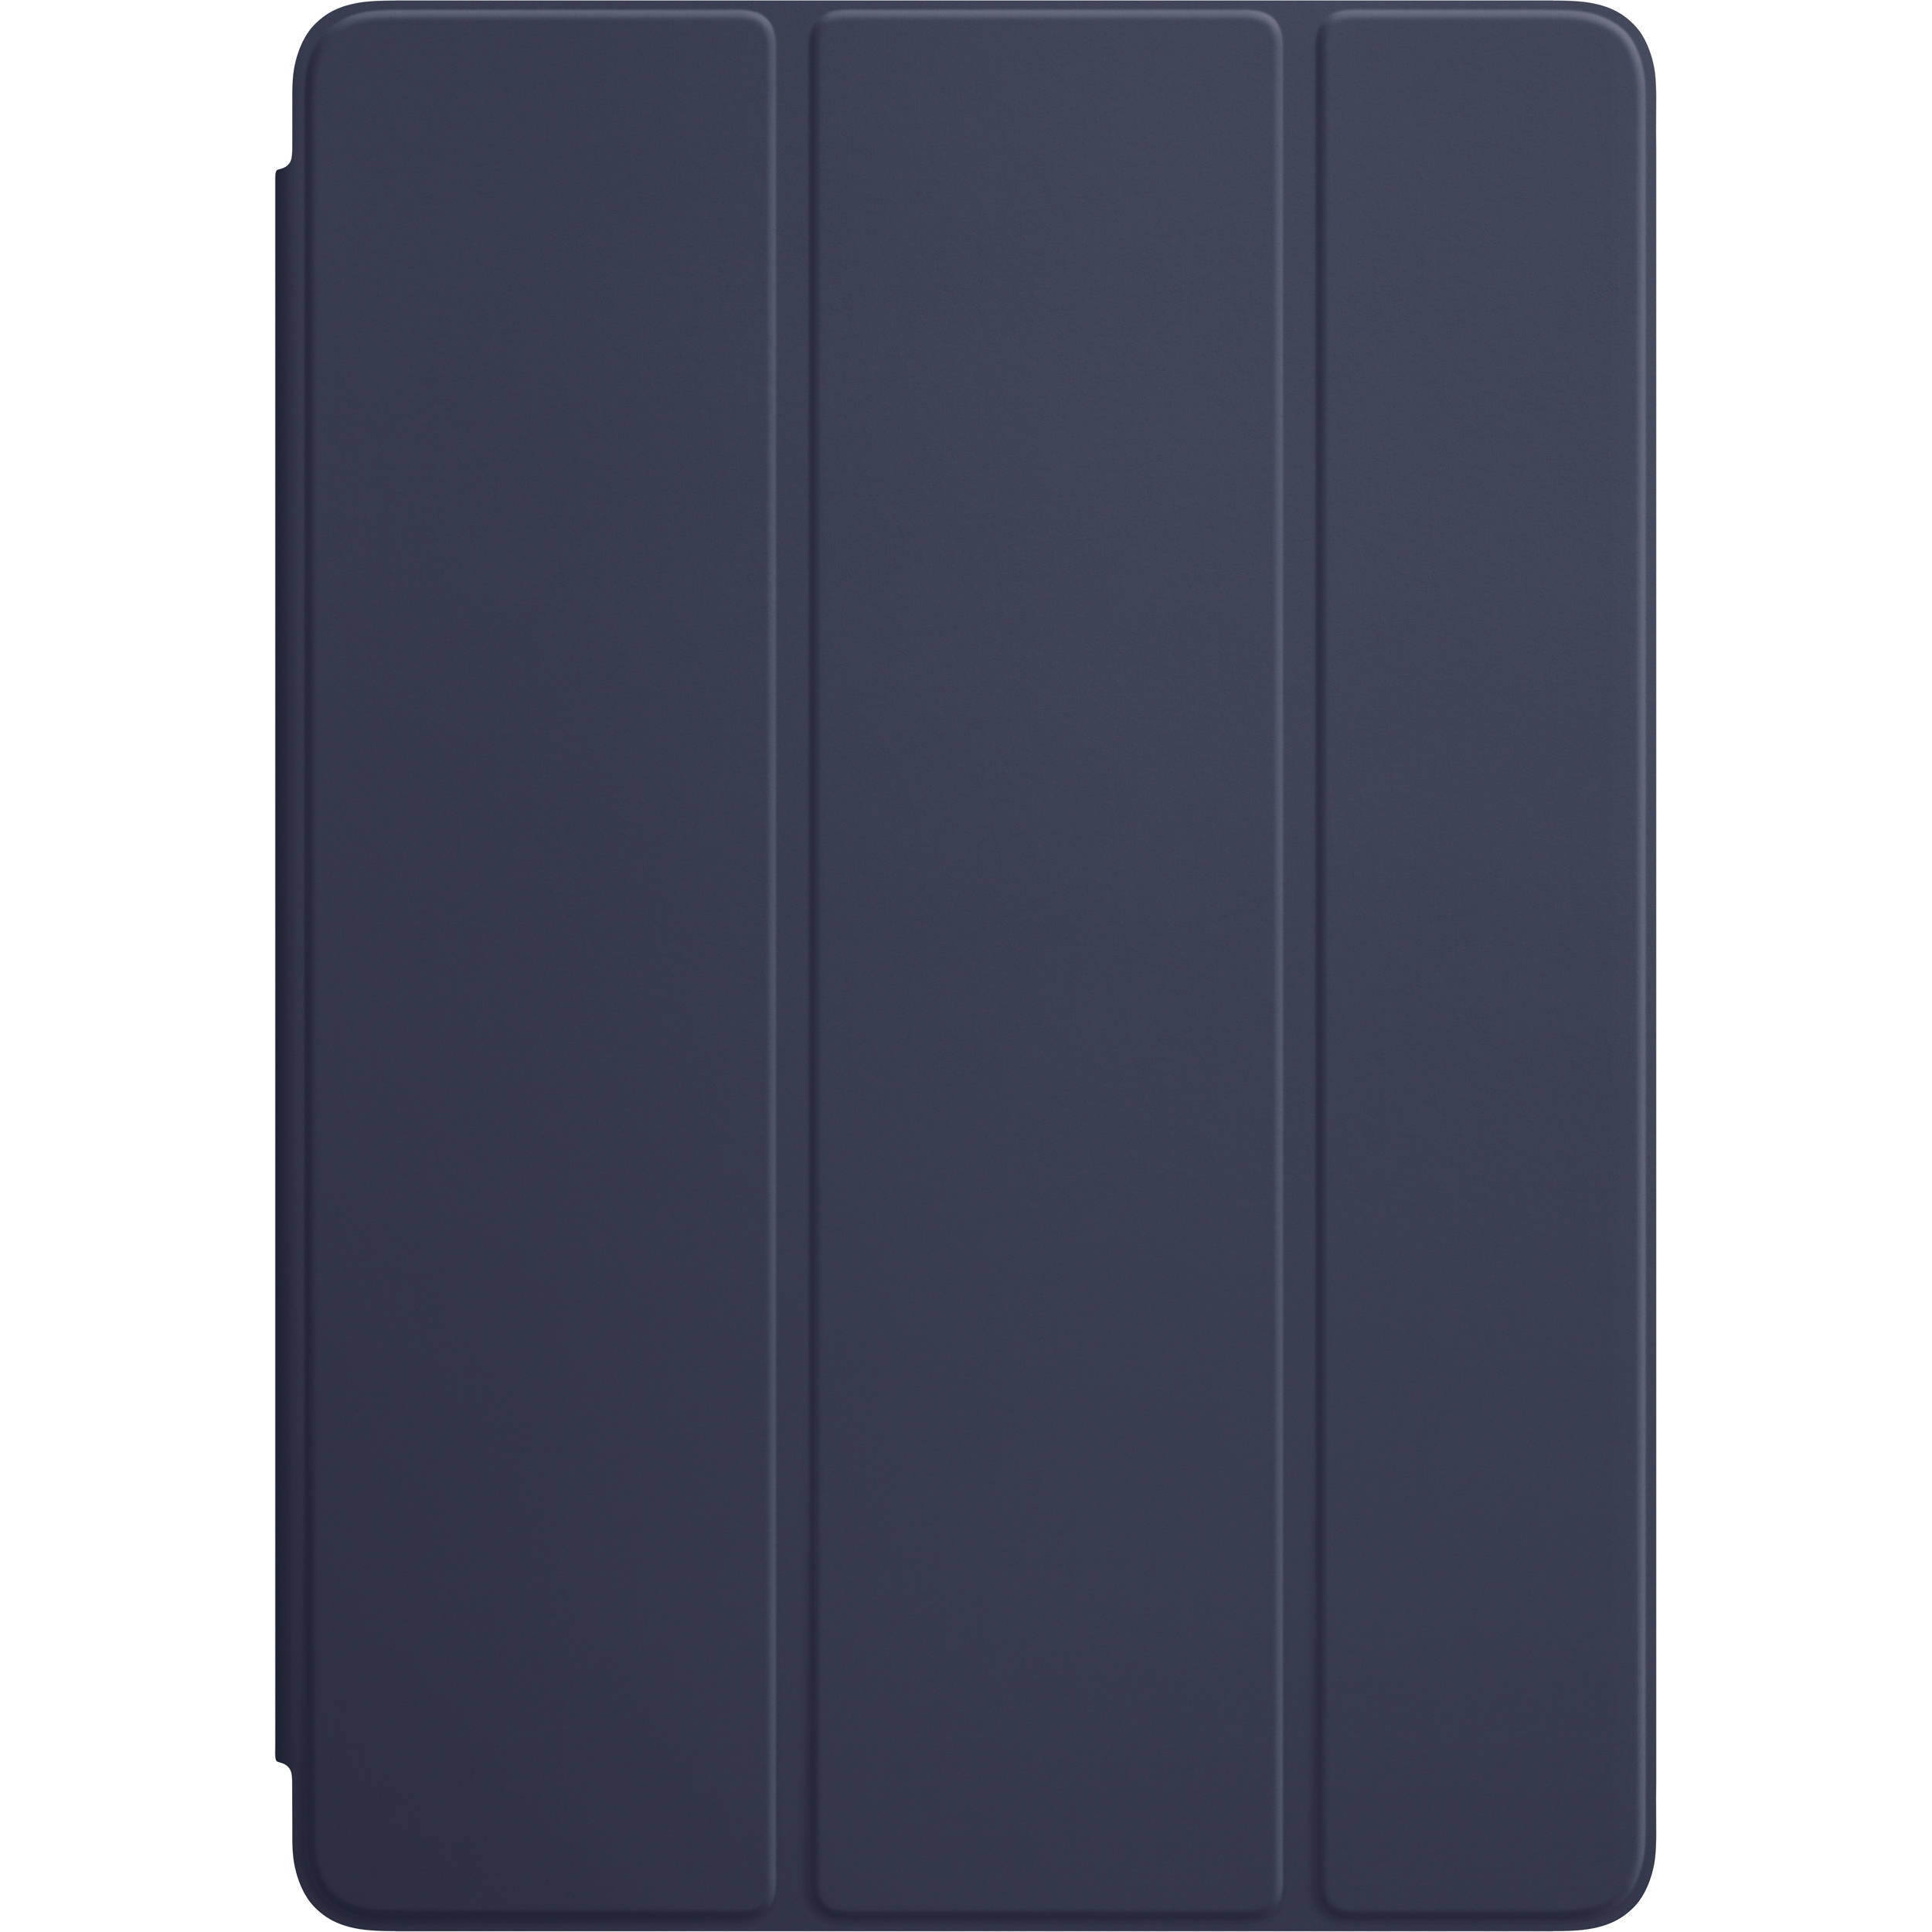 timeless design 9893d fd892 Apple iPad Smart Cover (PRODUCT RED)